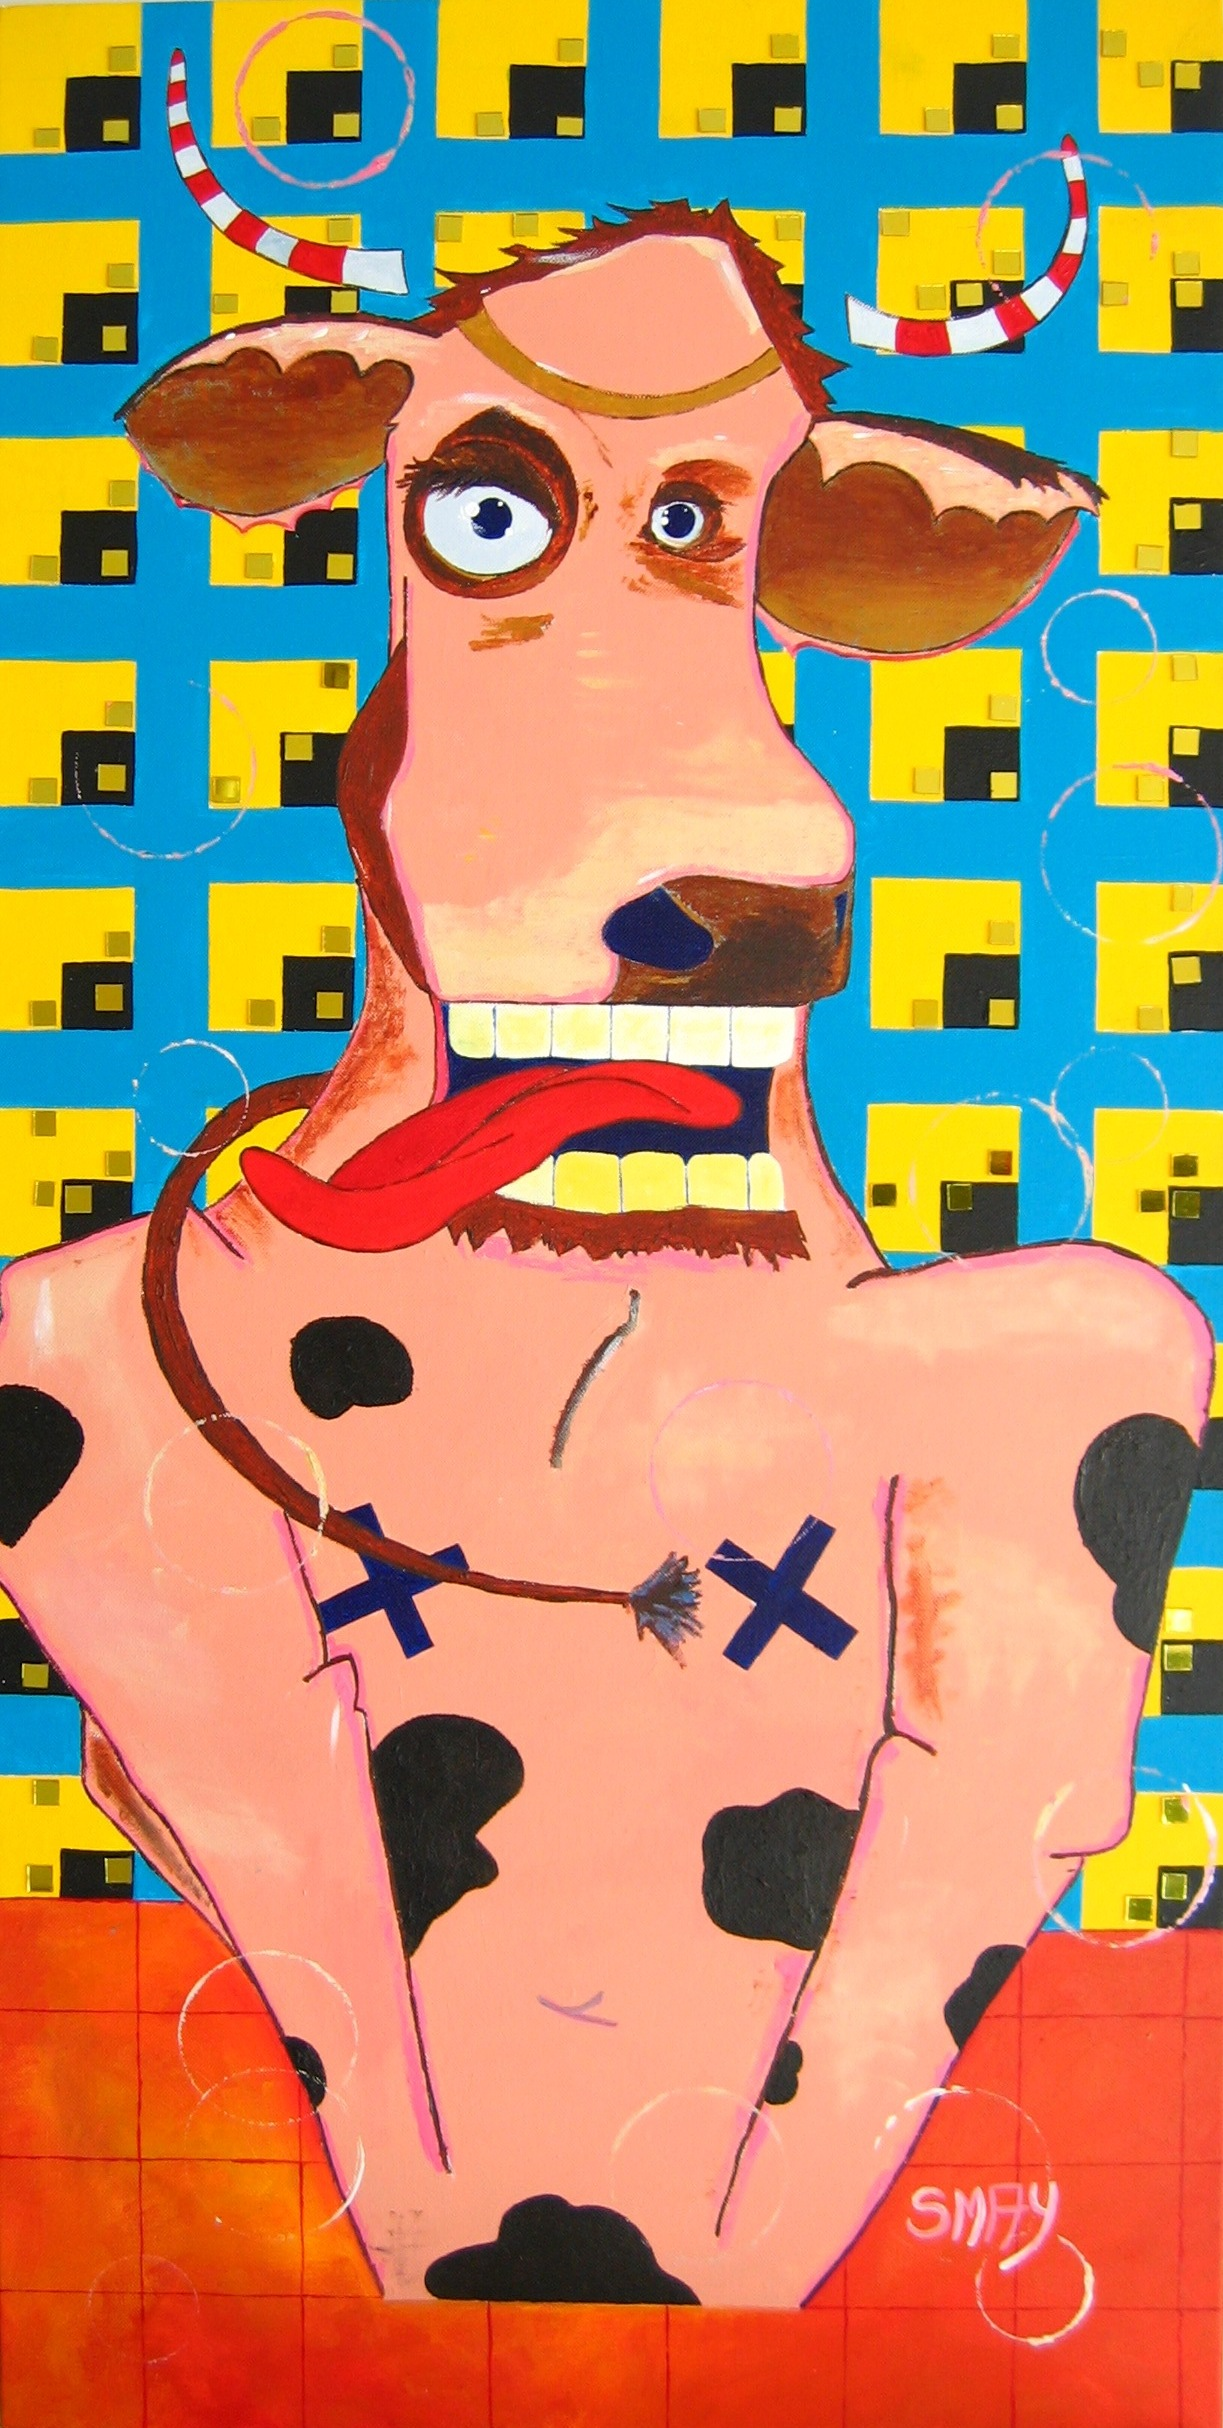 Cow Tongue for Dinner  2008 Mixed media on canvas 58 x 68cm